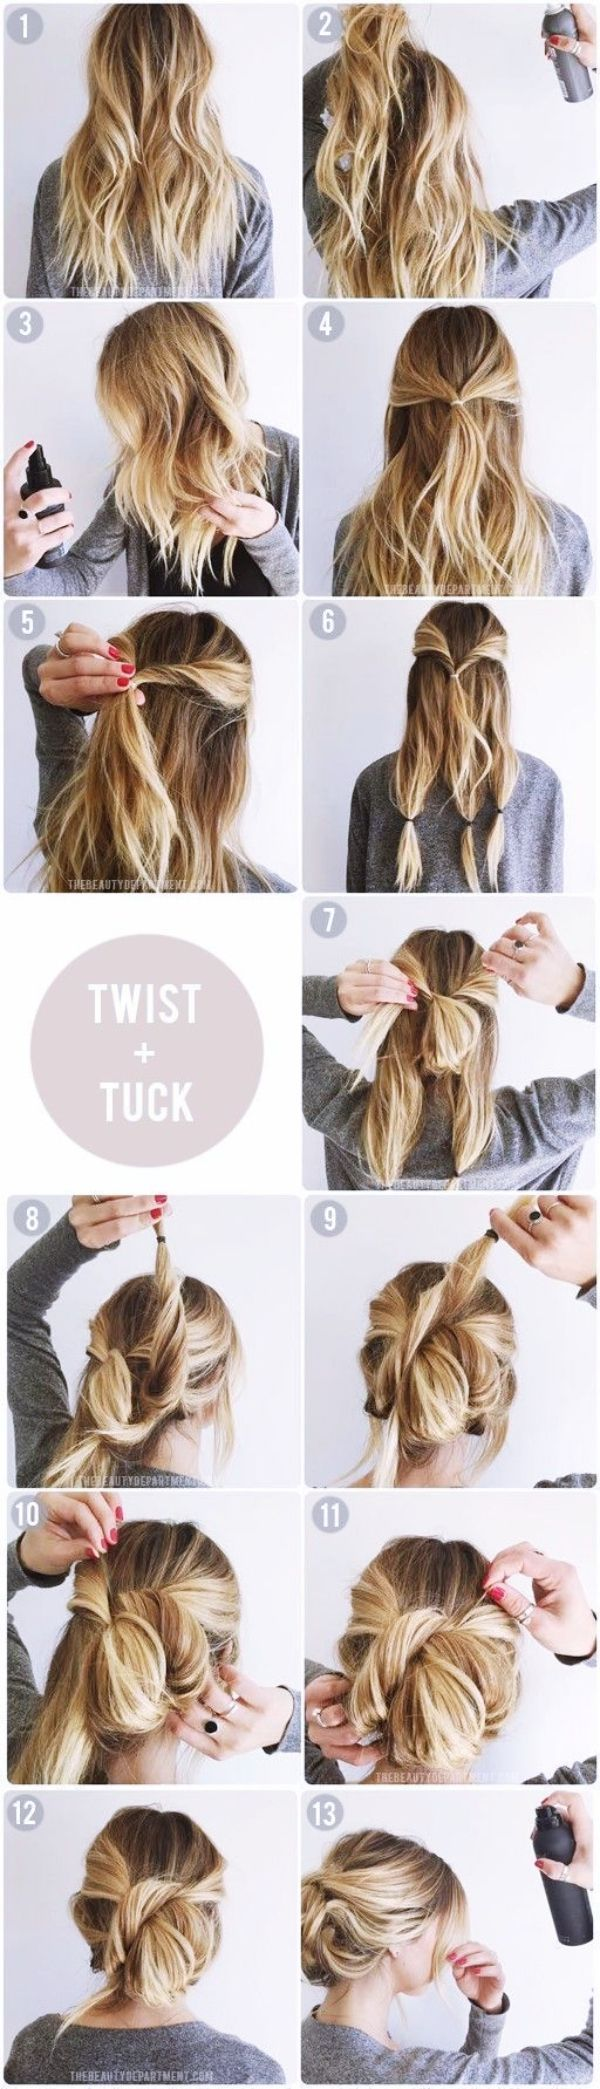 Quick Self Do Hairstyles For Working Moms Long Hair Styles Hair Styles Hair Updos